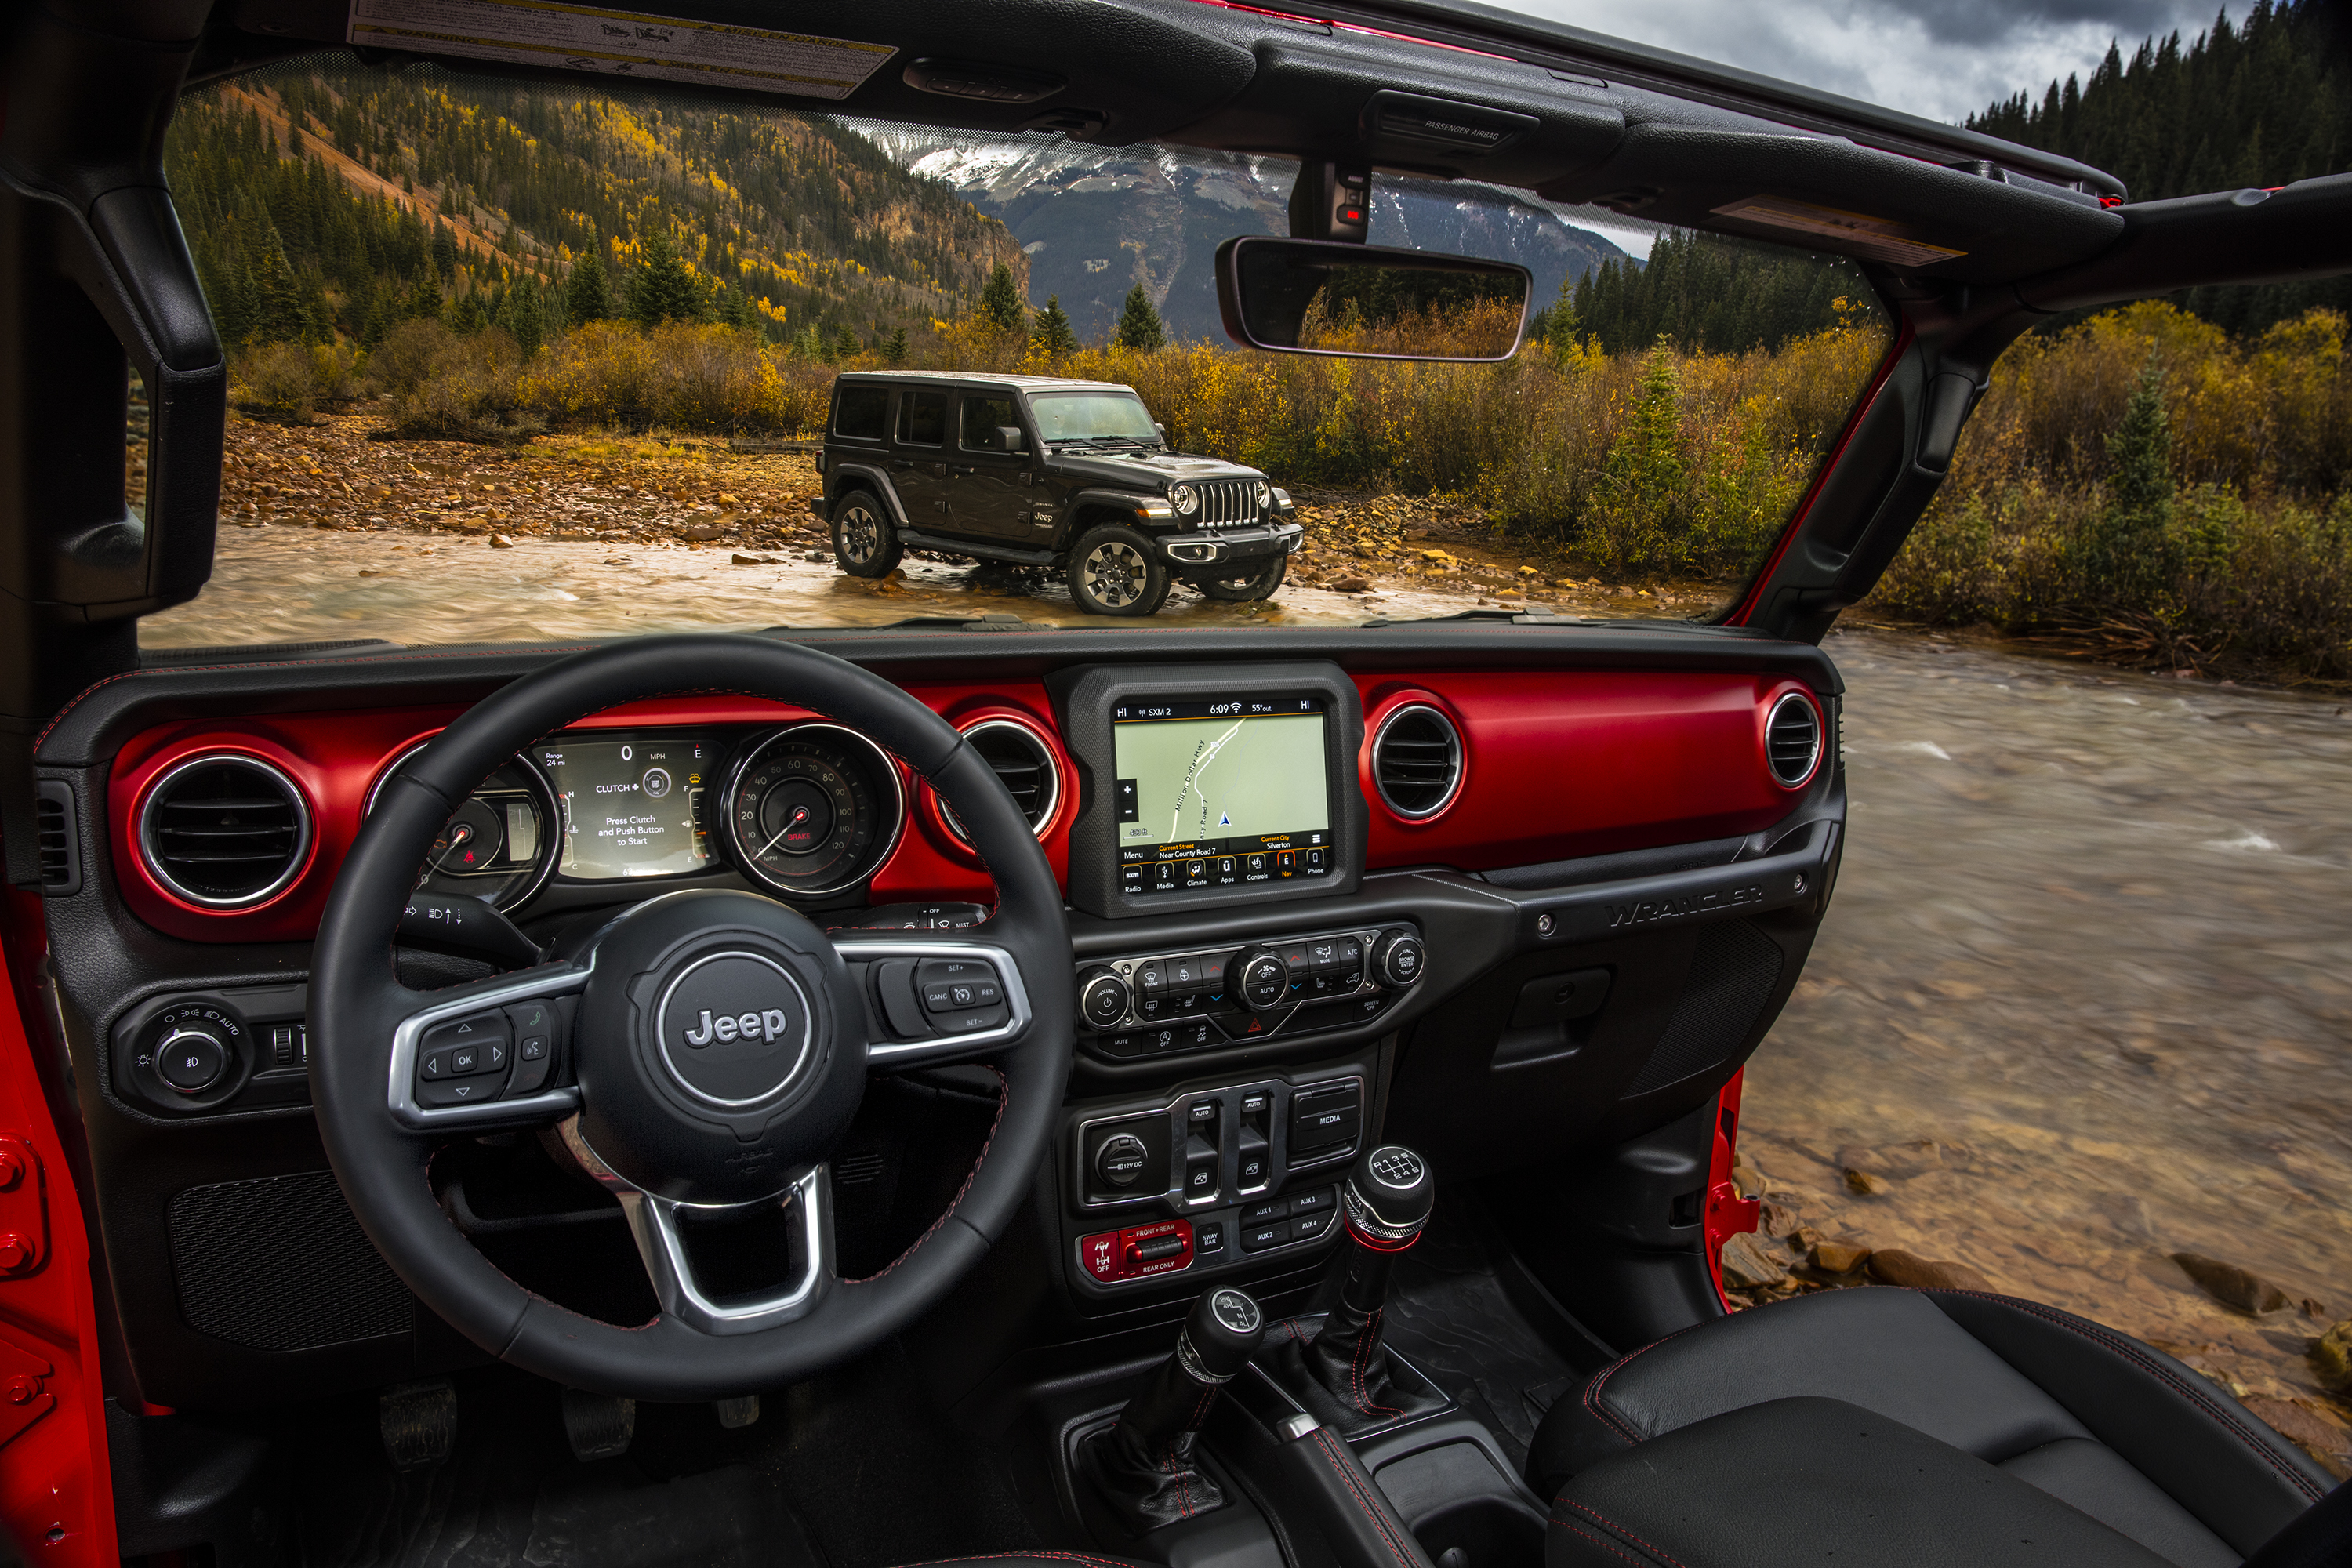 Jeep Drops Official Images Of 2018 Wrangler Interior | Top Speed